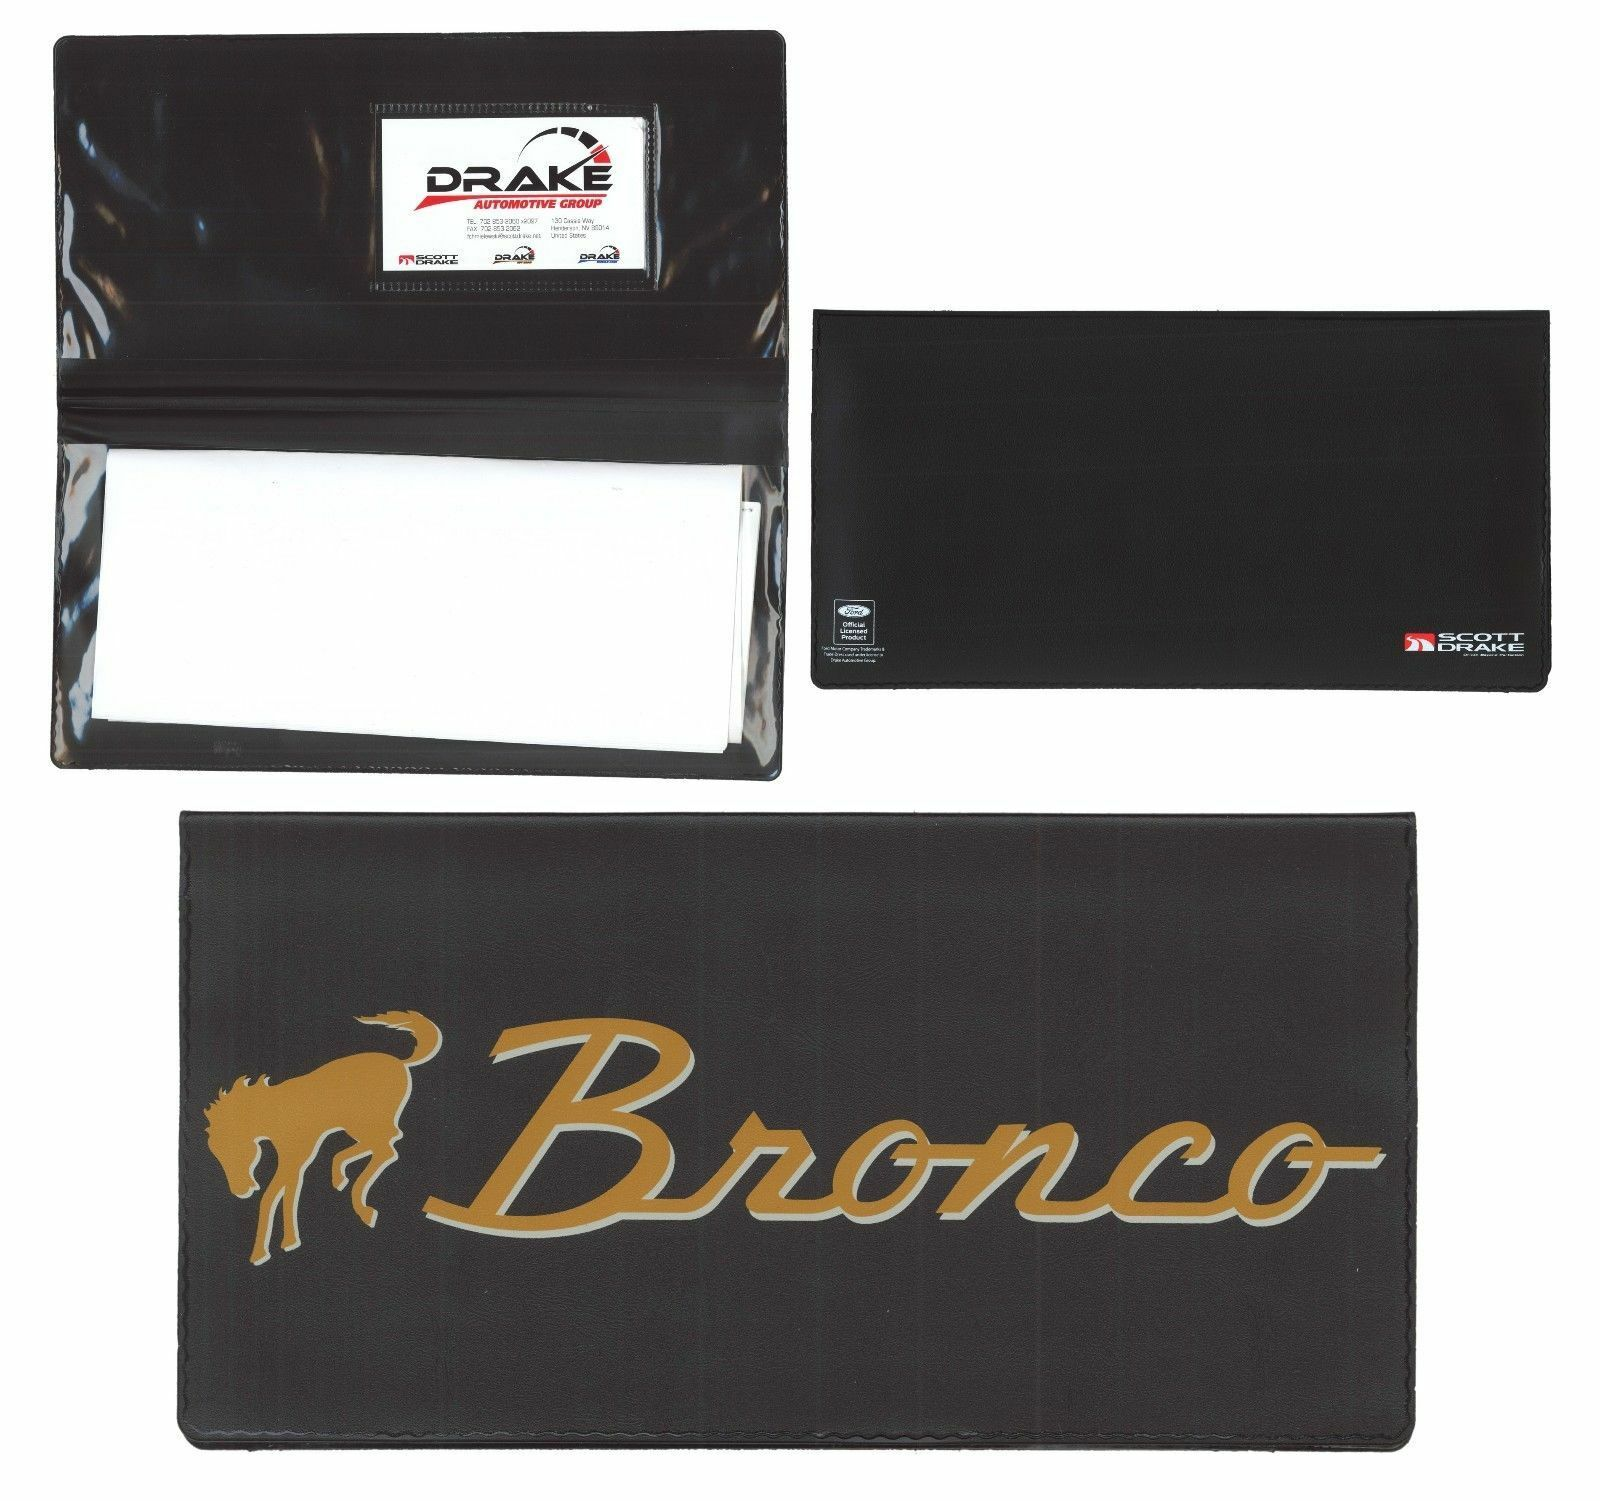 1966 1977 Ford BRONCO Owners Manual Wallet Ford Licensed